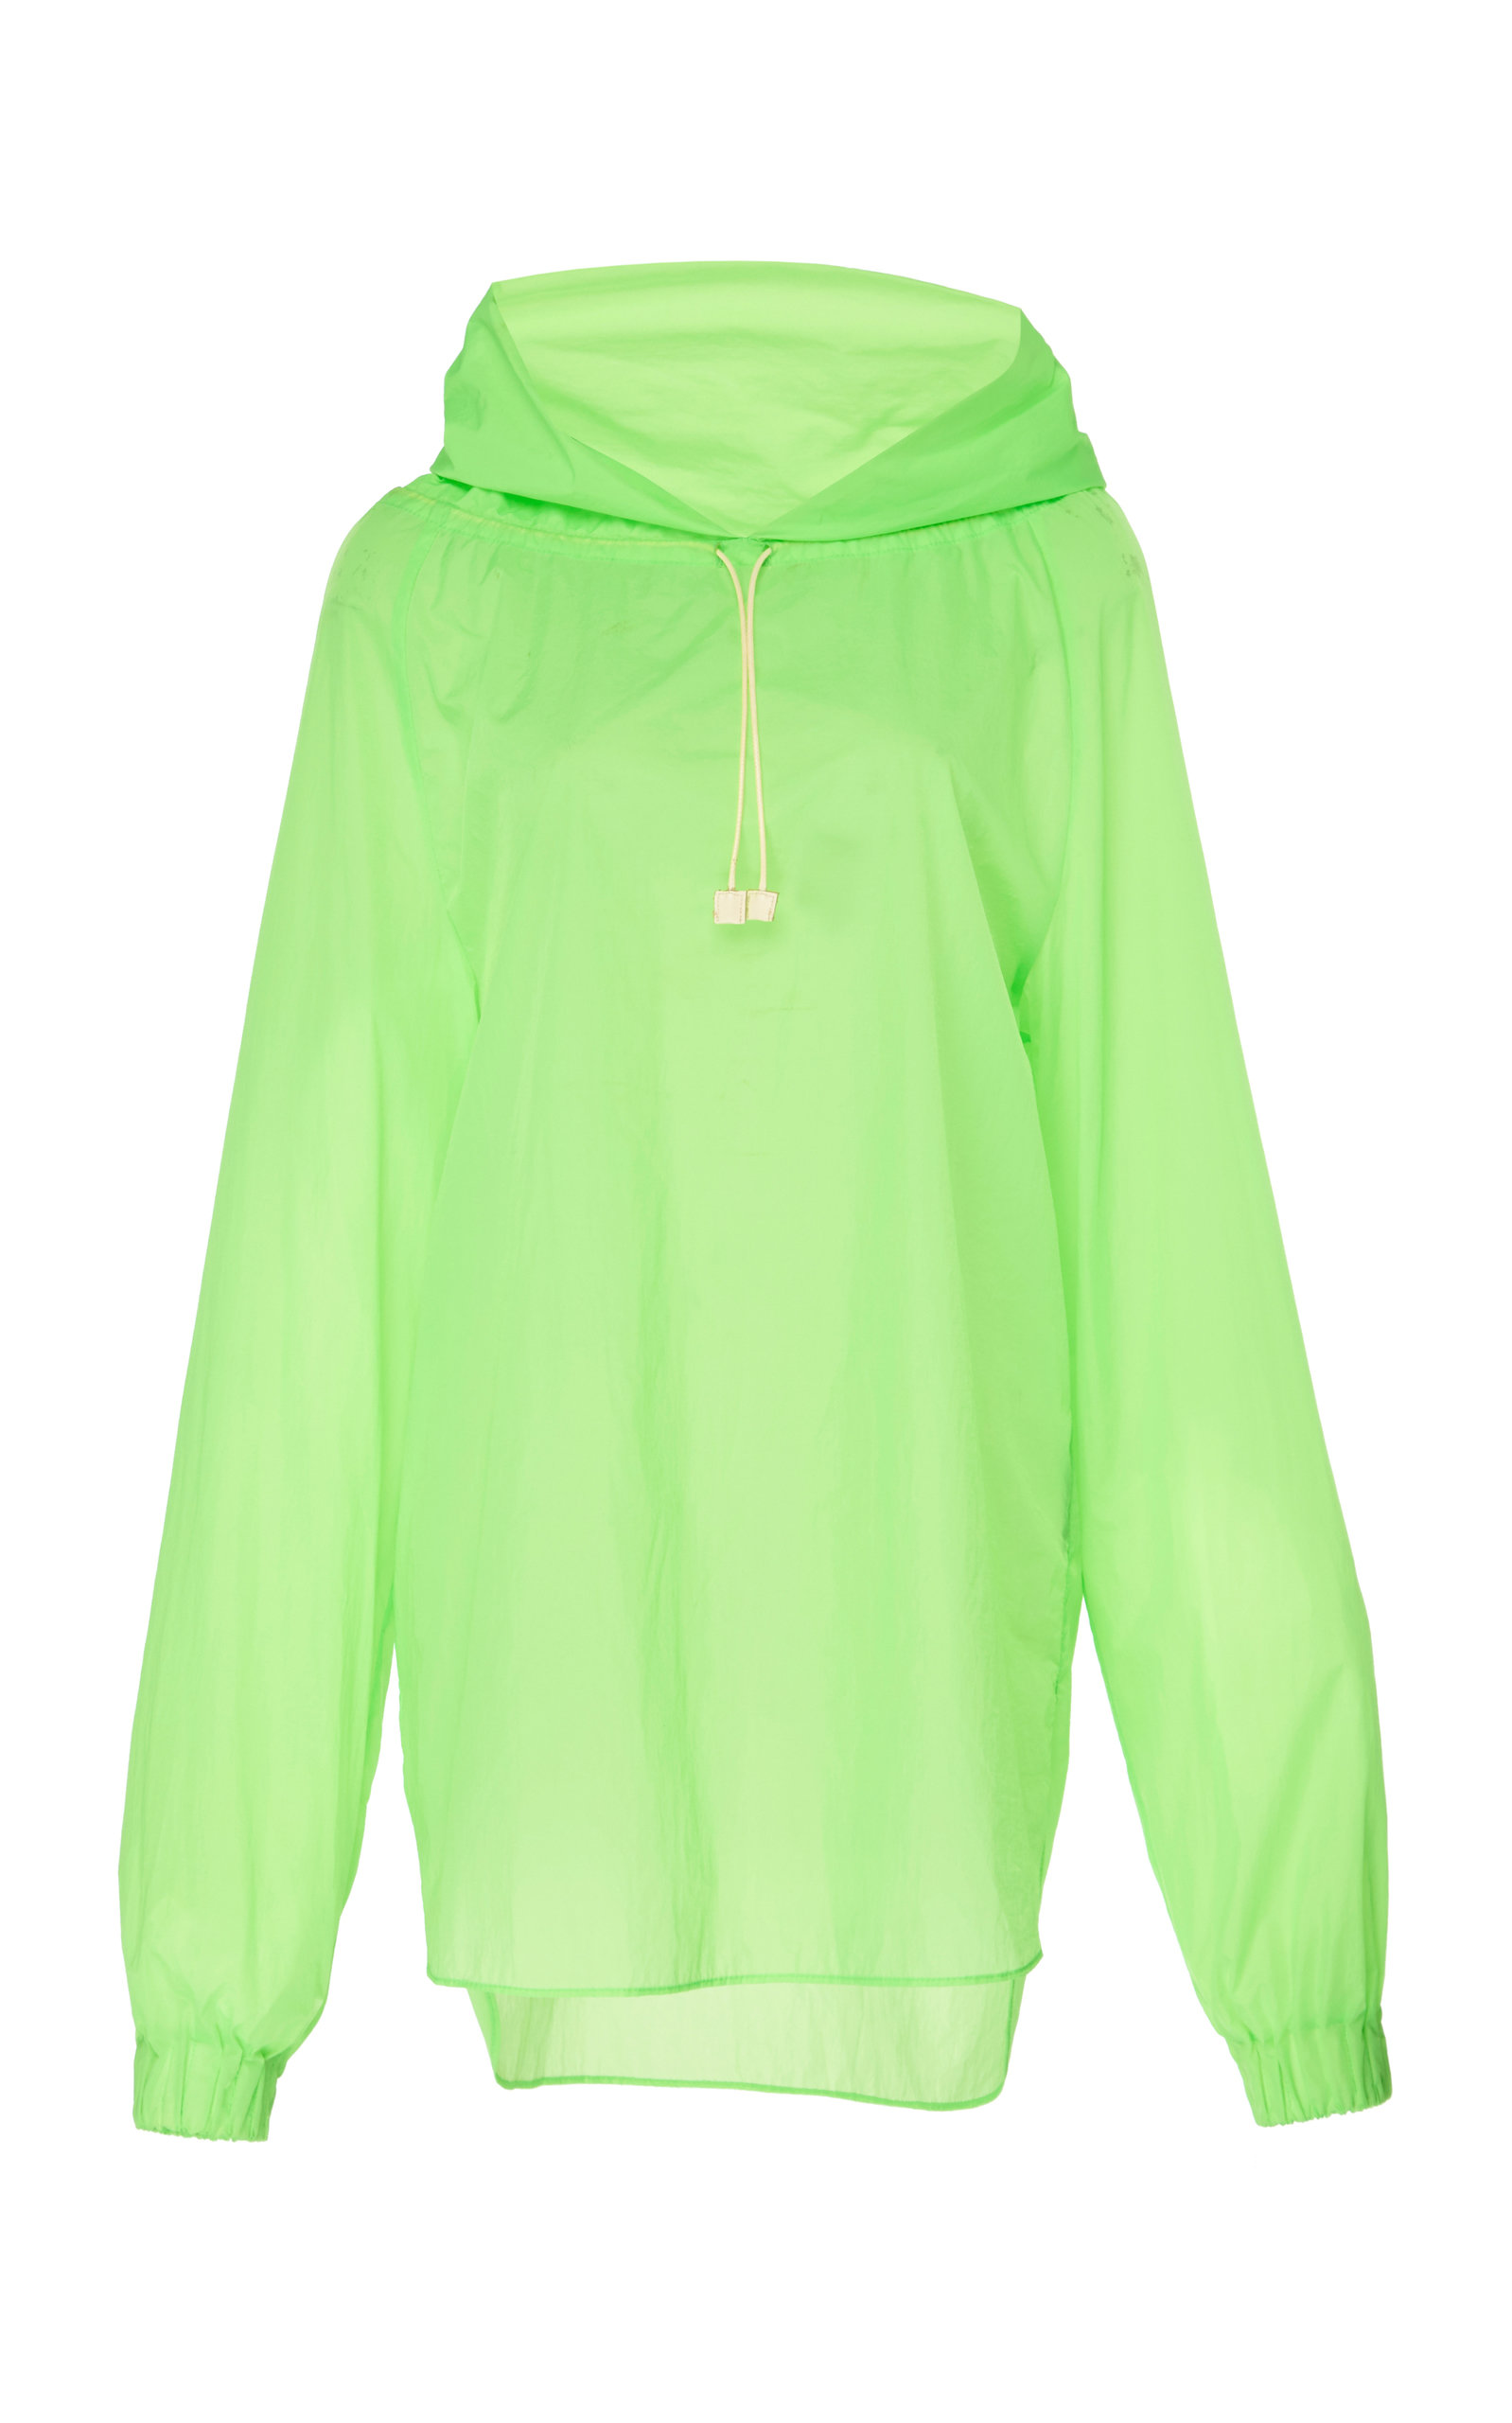 Rejina Pyo Tops ERICA HOODED SATIN BLOUSE